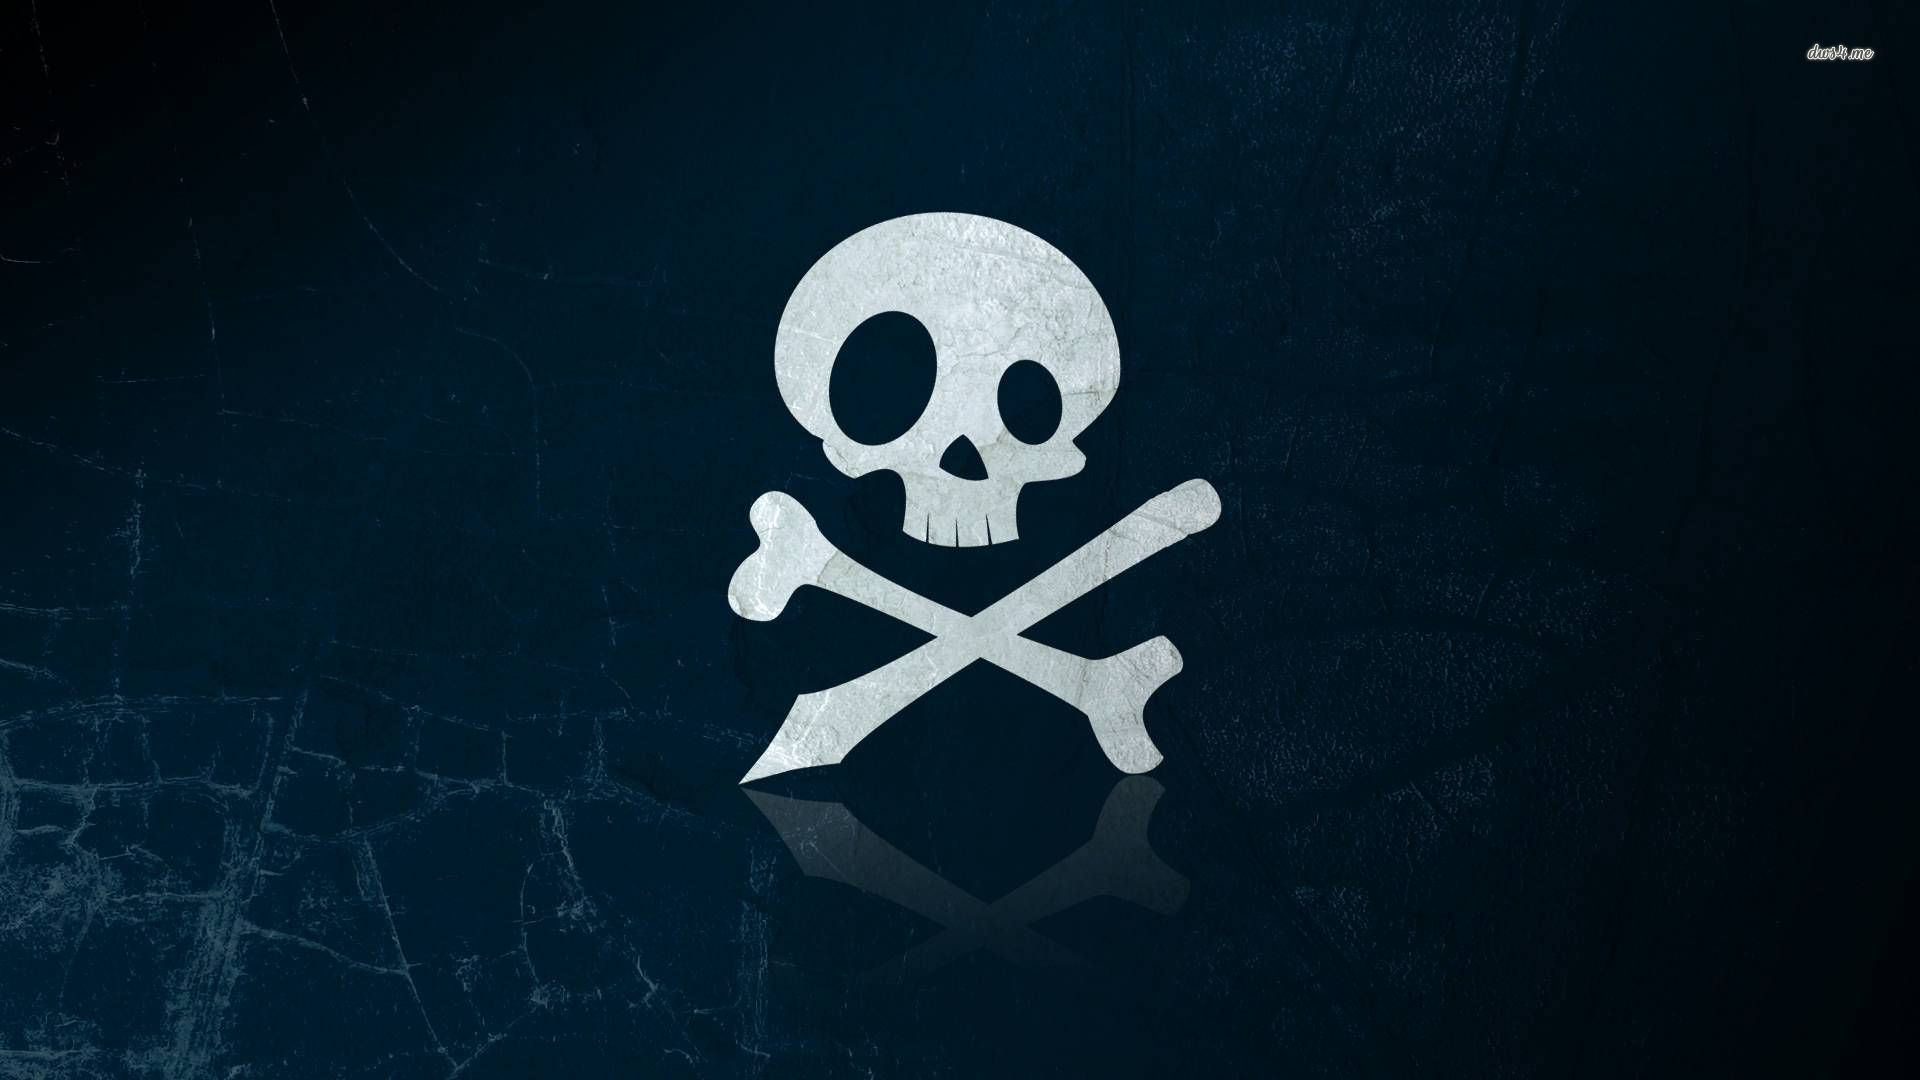 Wallpaper Of Skull And Crossbones